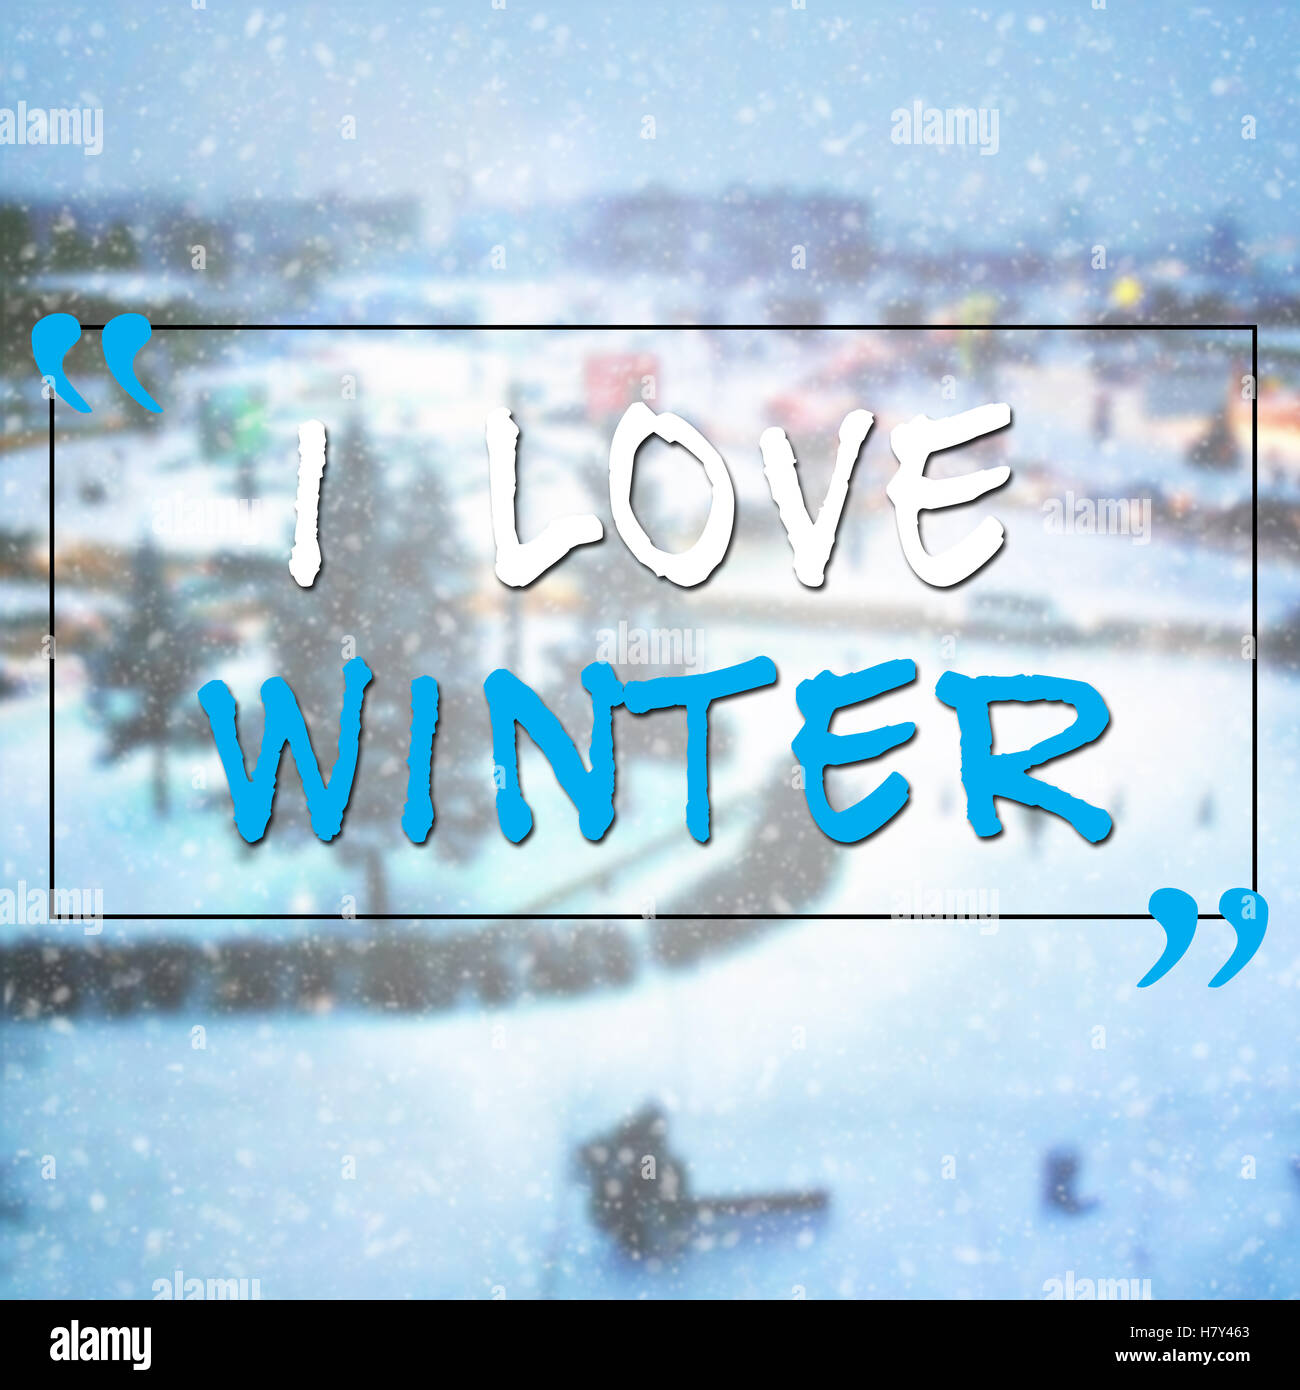 I Love Winter Motivational Quote On Blurred Wallpaper With Snow